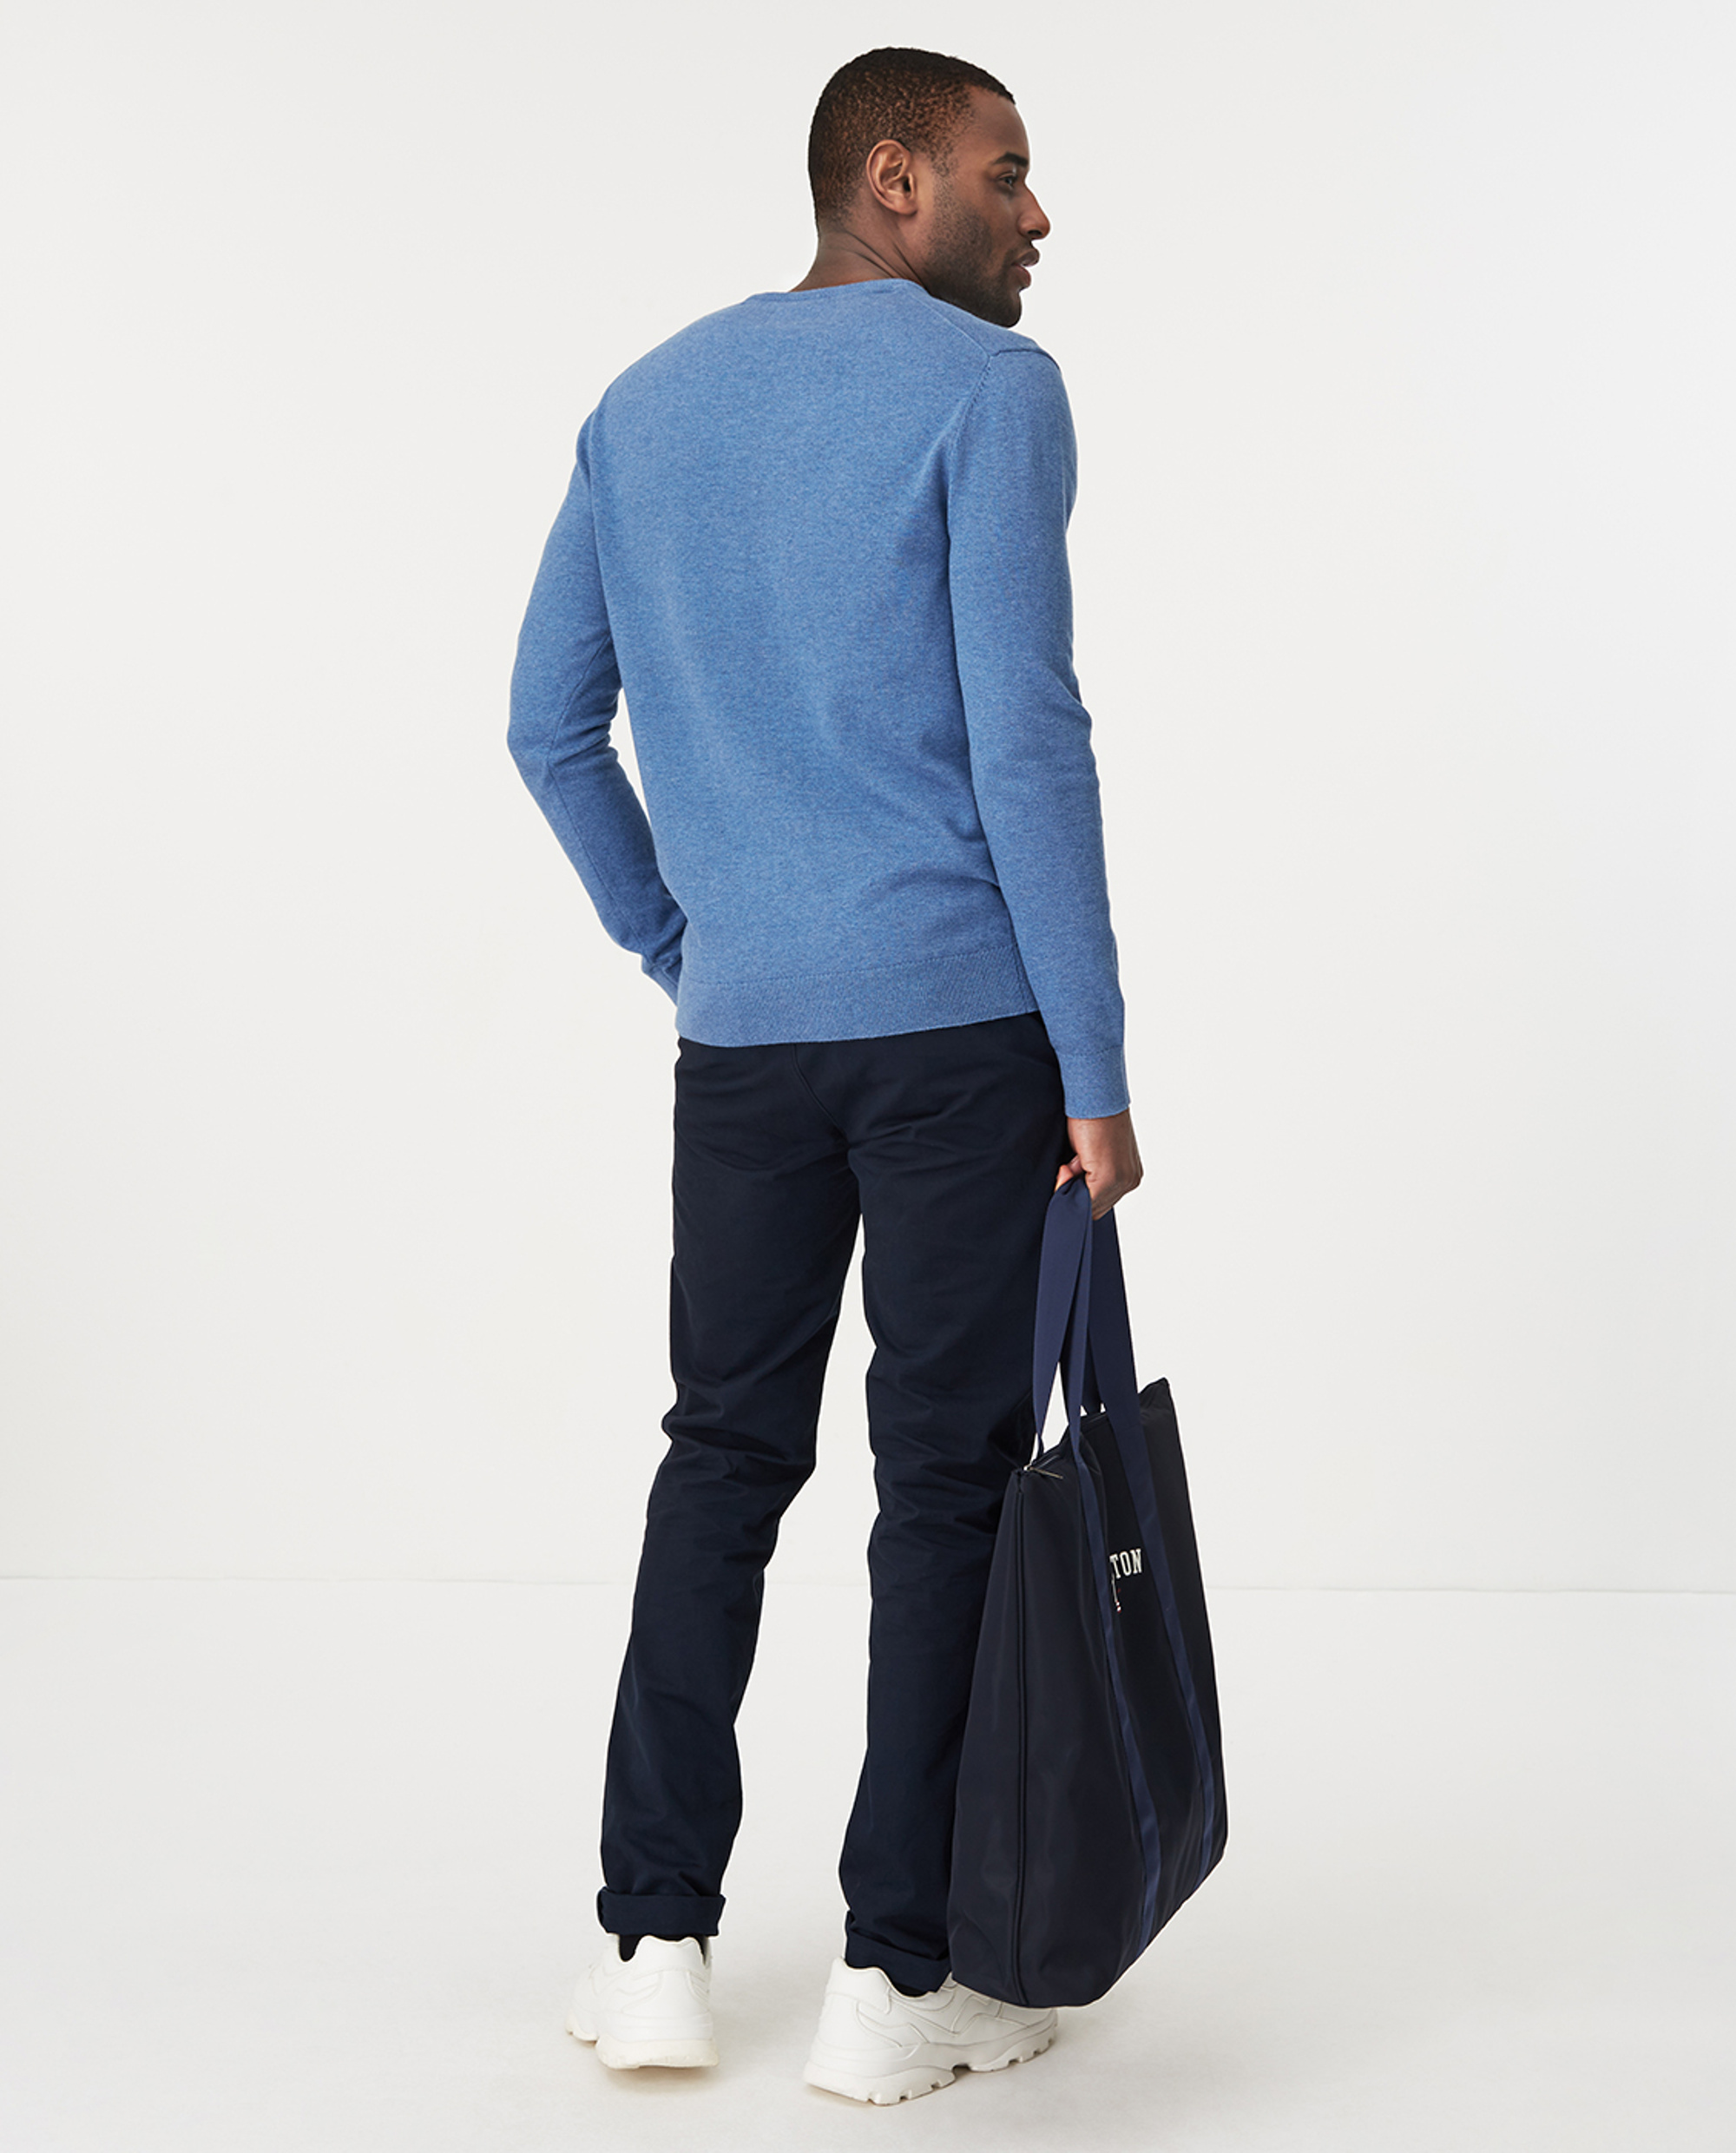 Bradley Crew Neck Sweater, Blue Melange